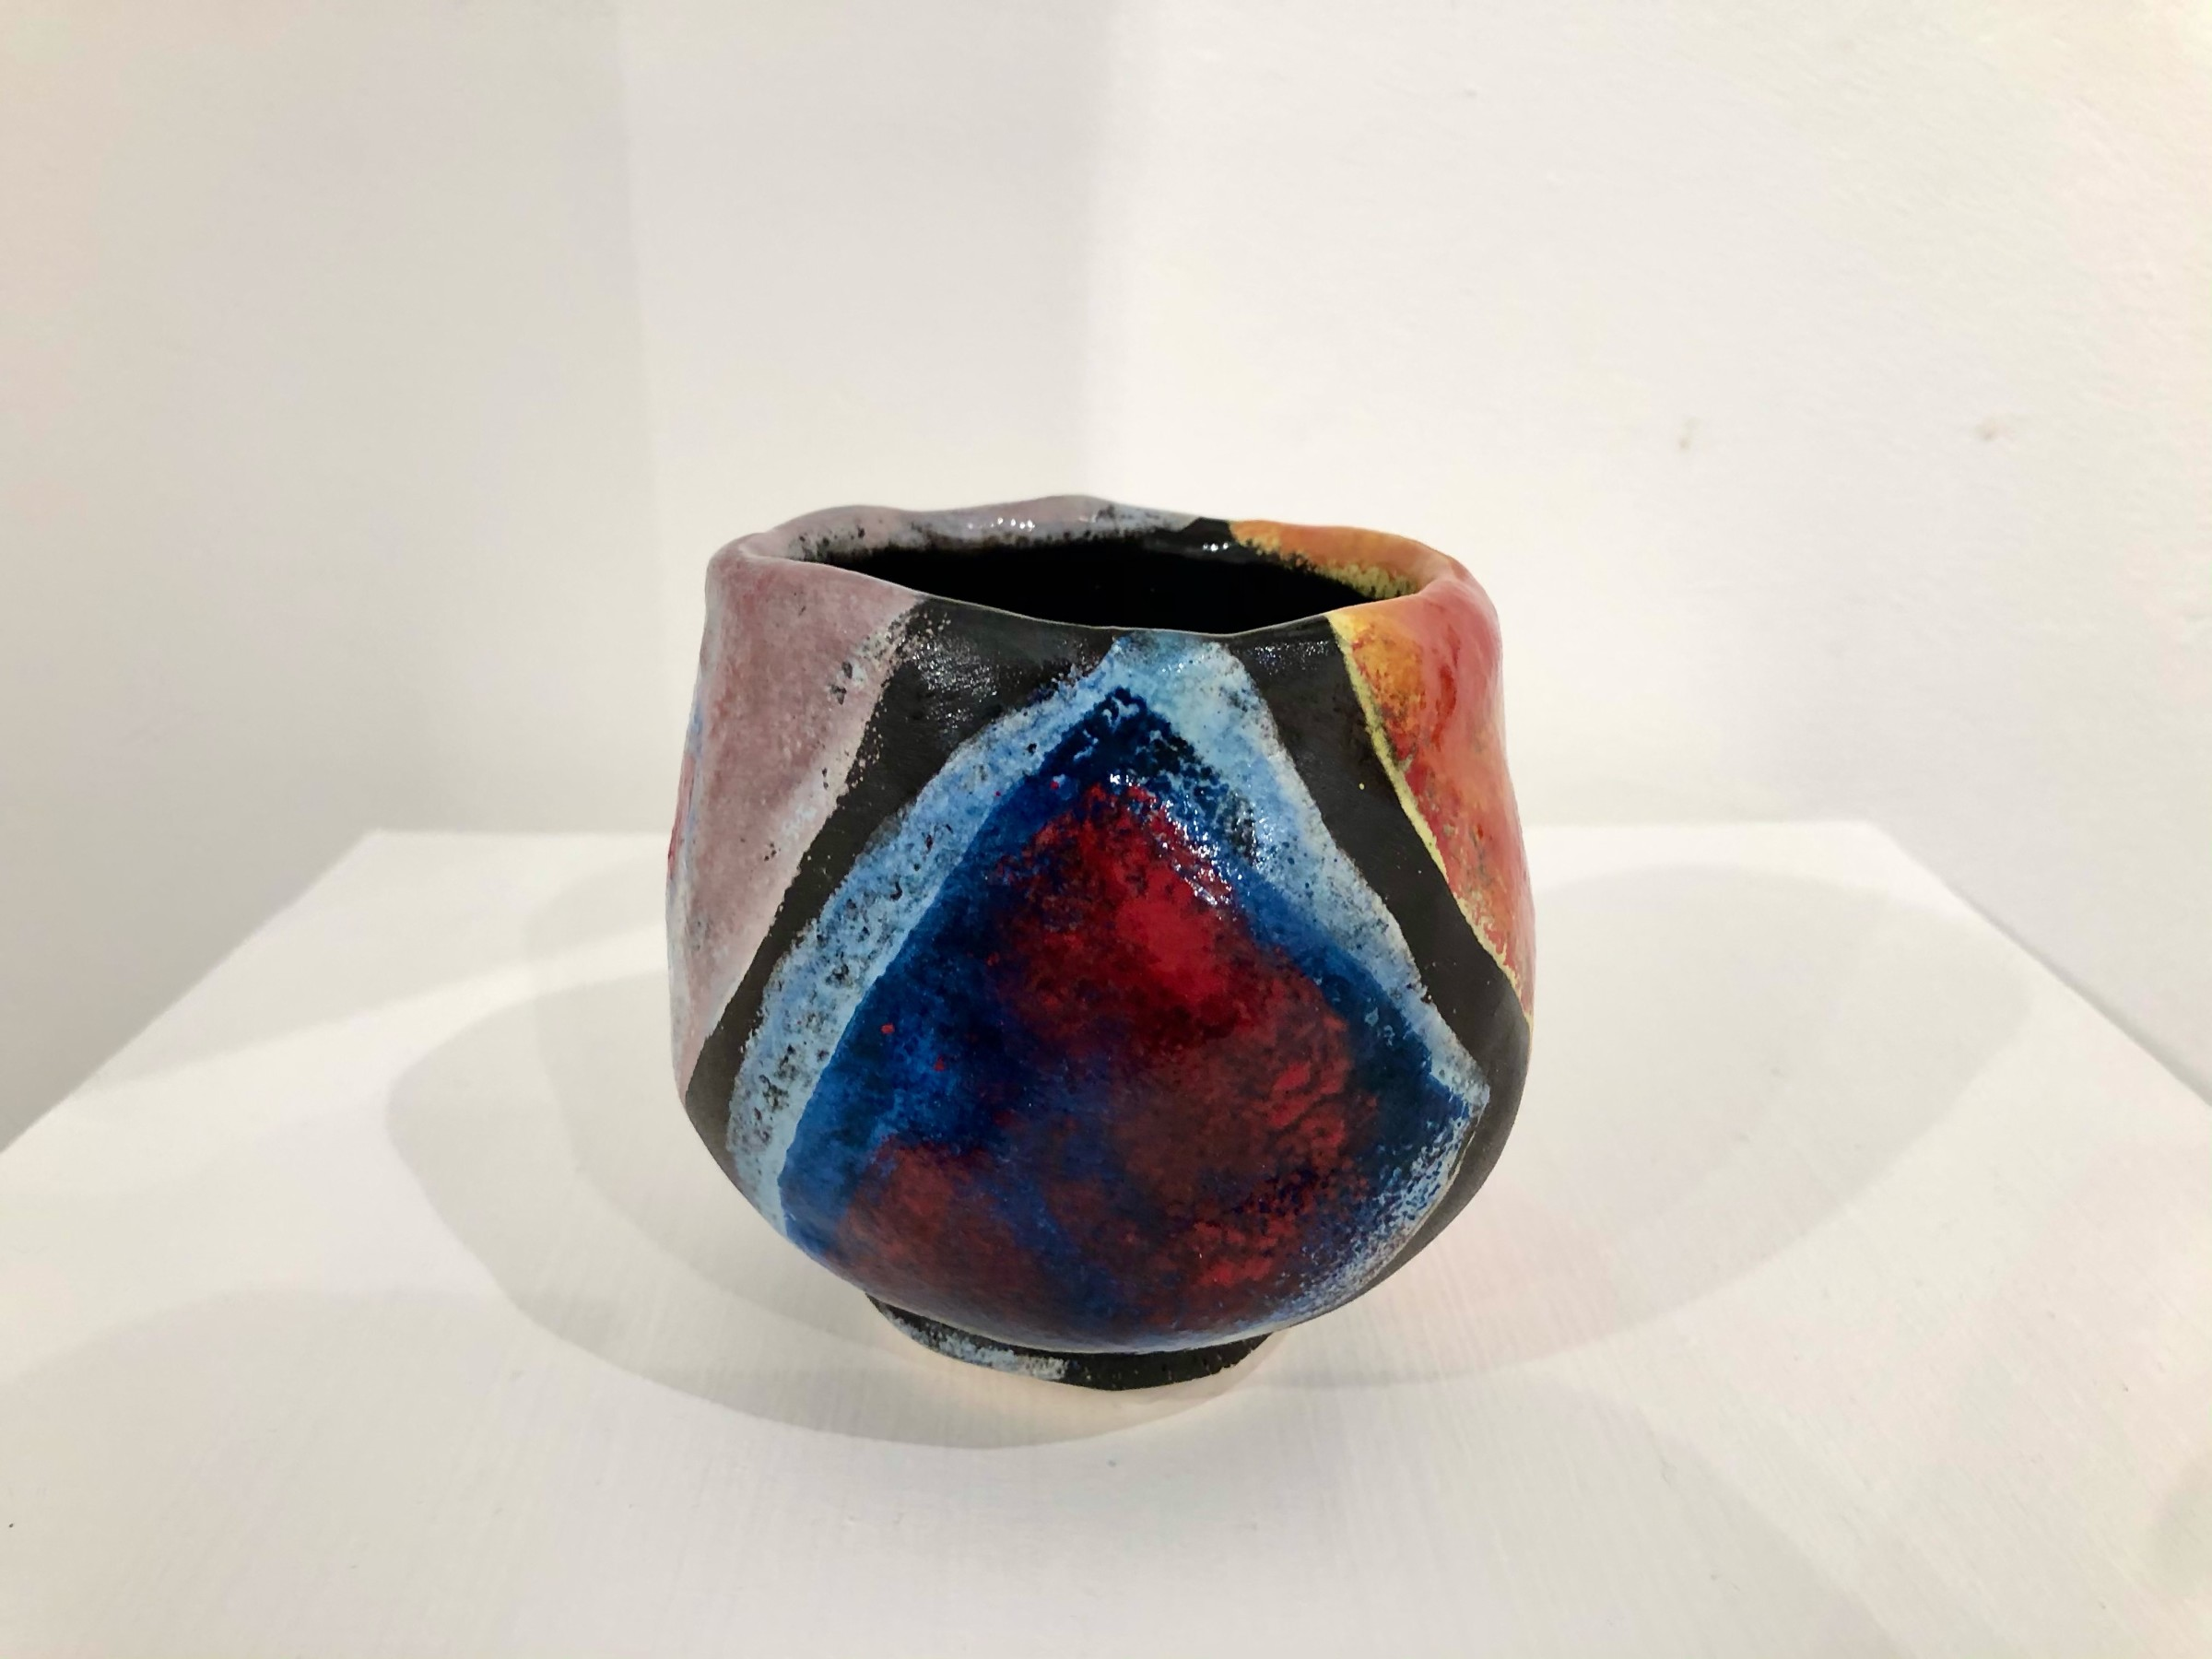 """<span class=""""link fancybox-details-link""""><a href=""""/artists/100-john-pollex/works/7419-john-pollex-tea-bowl-hand-built-2020/"""">View Detail Page</a></span><div class=""""artist""""><strong>John Pollex</strong></div> <div class=""""title""""><em>Tea bowl (hand built)</em>, 2020</div> <div class=""""signed_and_dated"""">impressed with the artist's seal mark 'JP'</div> <div class=""""medium"""">white earthenware decorated with coloured slips</div> <div class=""""dimensions"""">height. 10 cm x diameter. 9 cm</div><div class=""""price"""">£88.00</div><div class=""""copyright_line"""">Copyright The Artist</div>"""